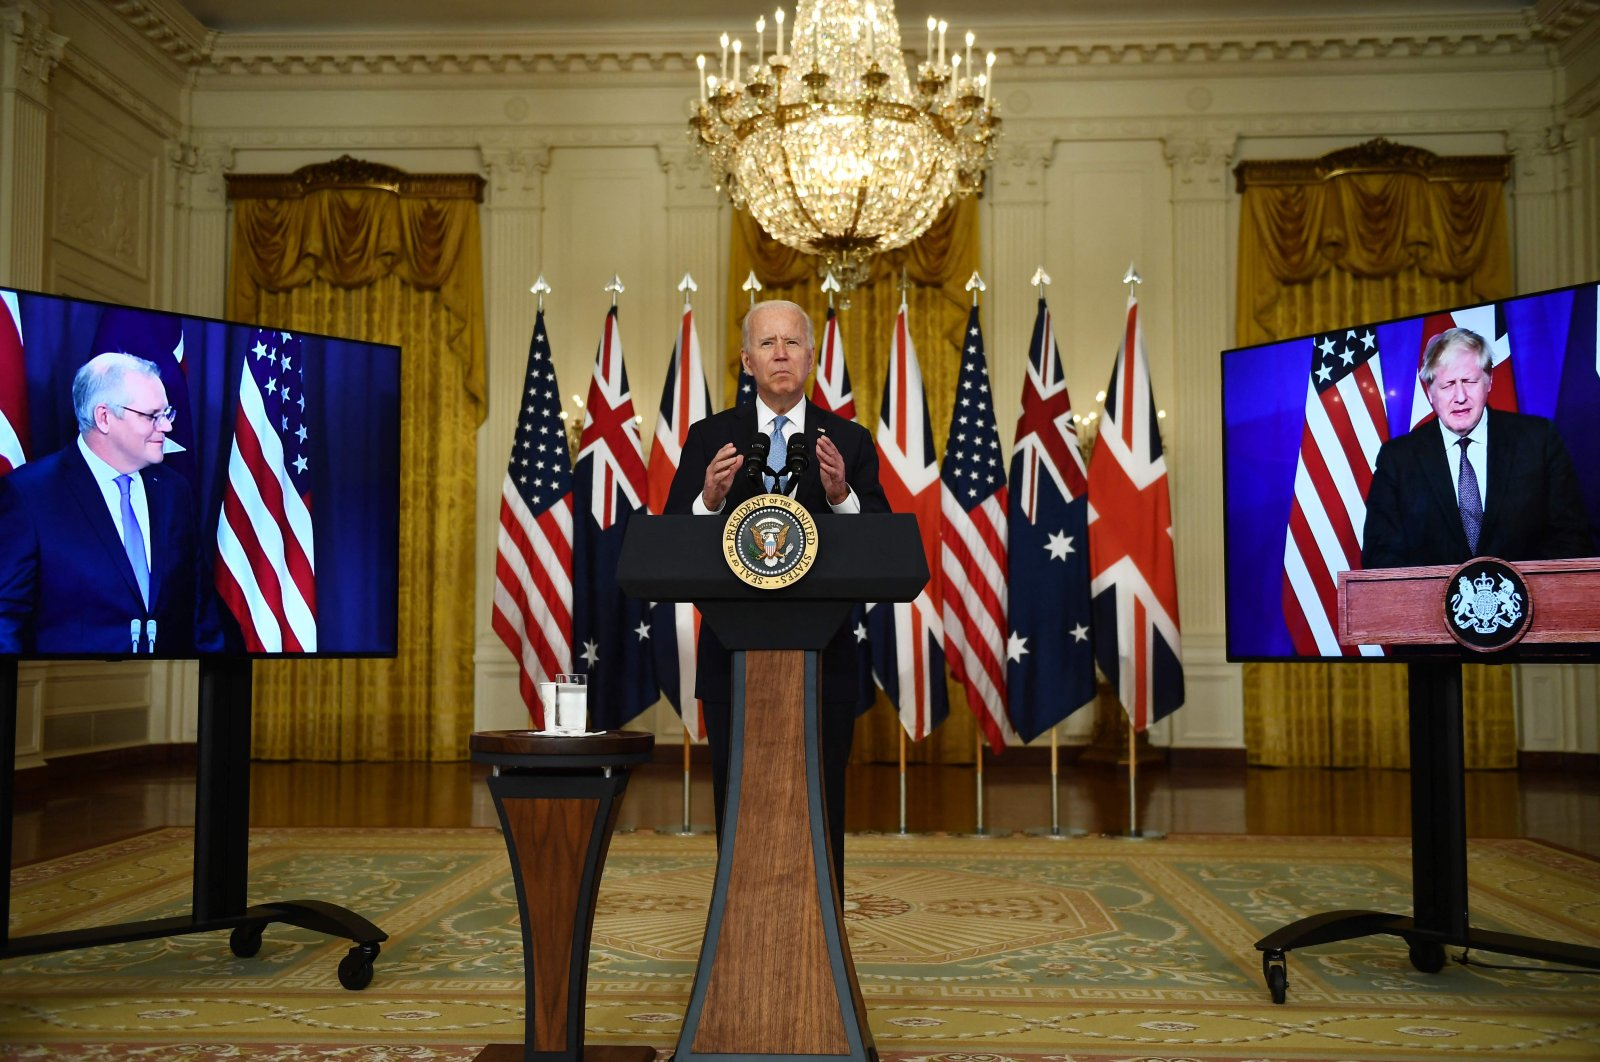 U.S. President Joe Biden, joined virtually by Australian Prime Minister Scott Morrison (R) and British Prime Minister Boris Johnson, speaks about a national security initiative from the East Room of the White House in Washington, Sept. 15, 2021. (AFP Photo)